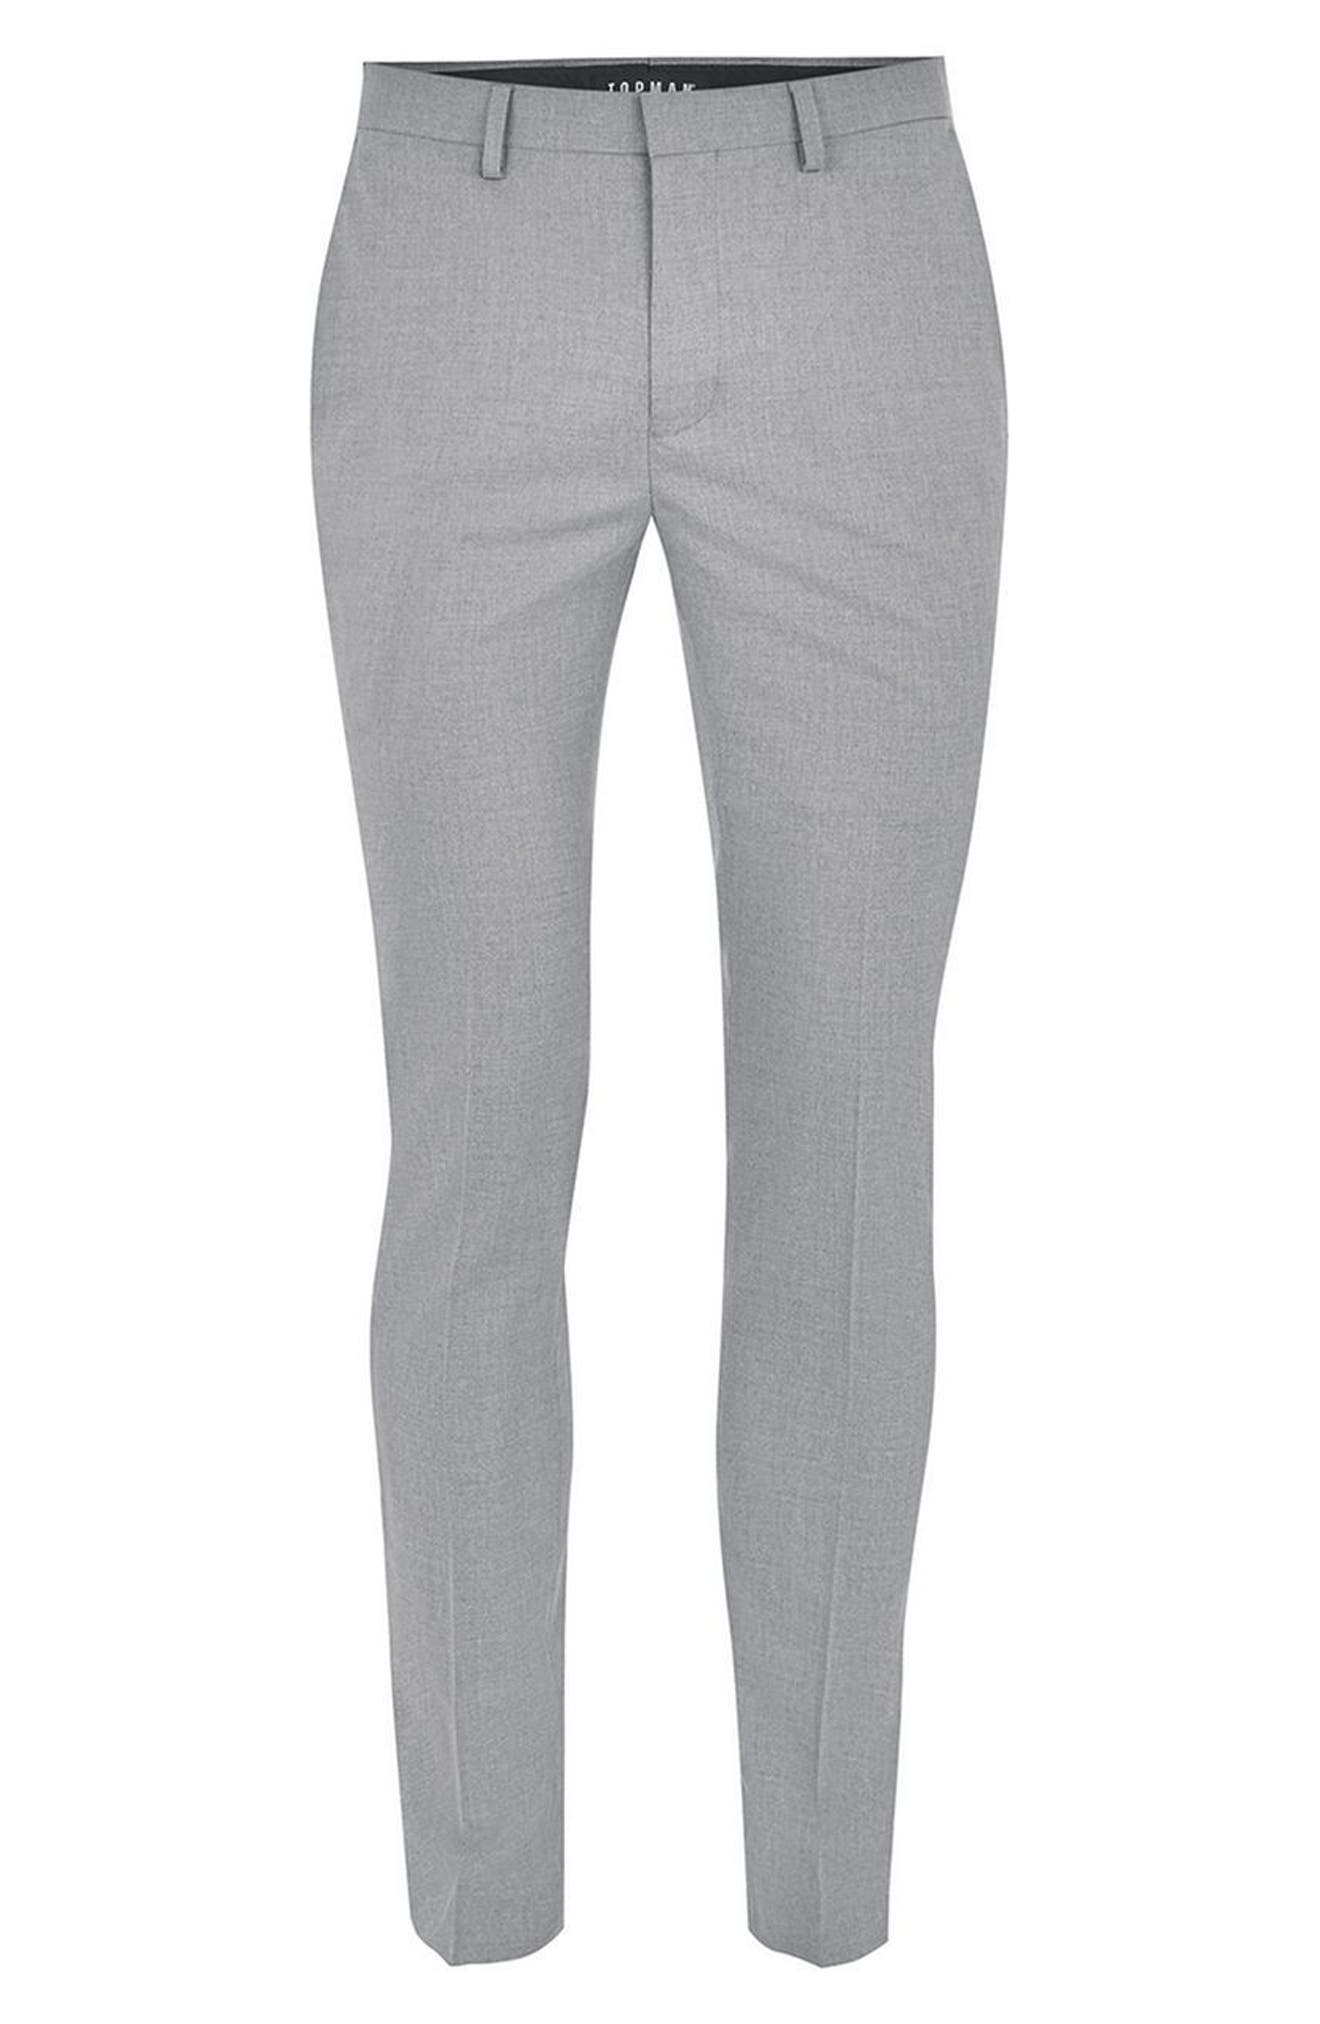 Ultra Skinny Fit Smart Trousers,                             Alternate thumbnail 4, color,                             Grey